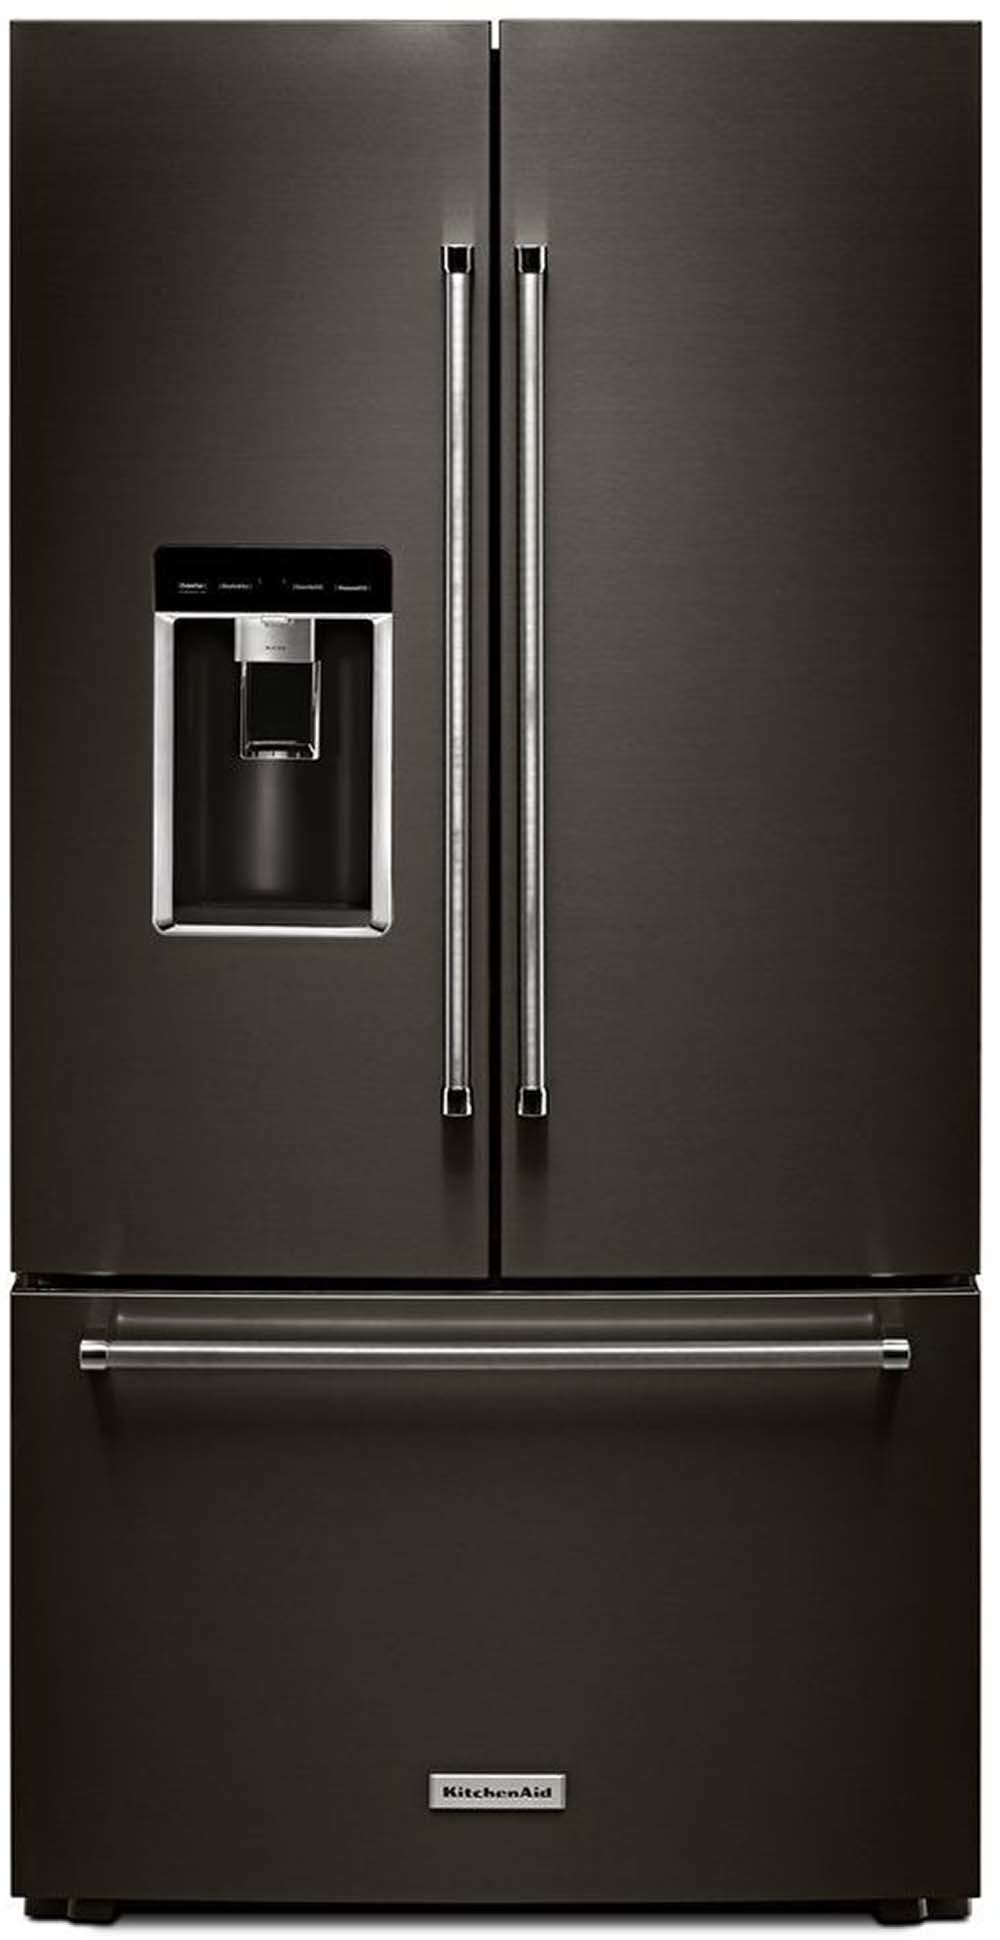 The black stainless steel option—the KRFC704FBS—costs over $3,800 but it looks pretty awesome.